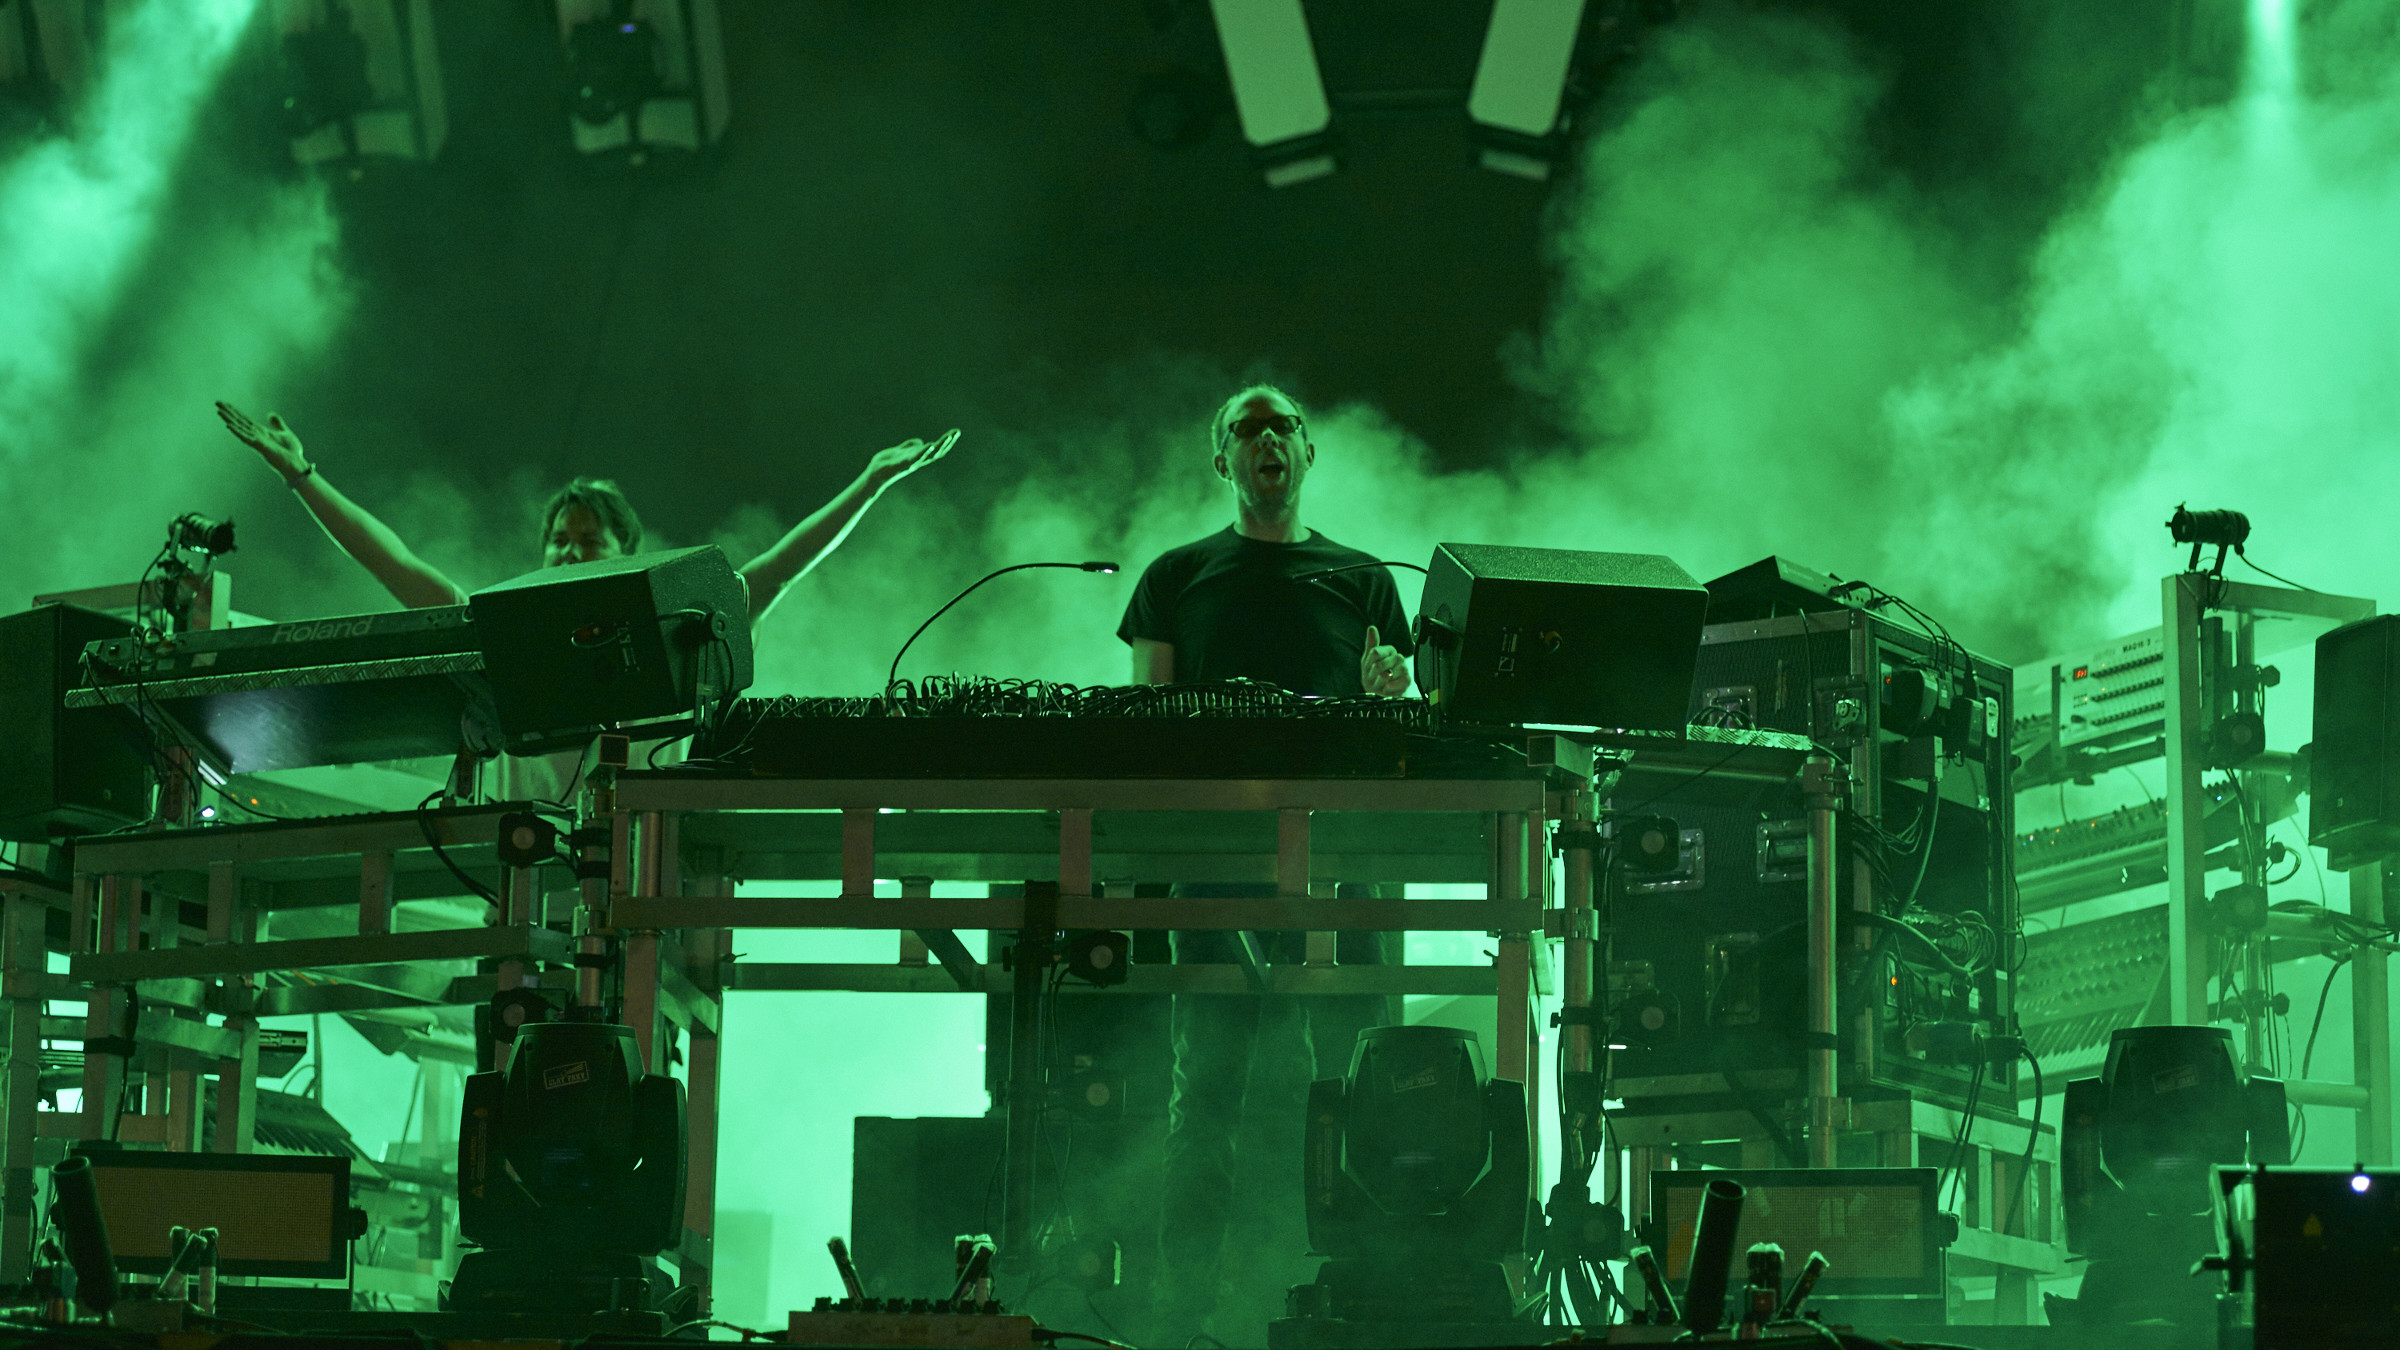 The Chemical Brothers perform on day 1 of the Electric Zoo EDM festival at Randall's Island Park on Friday, Sept. 4, 2015 in New York.